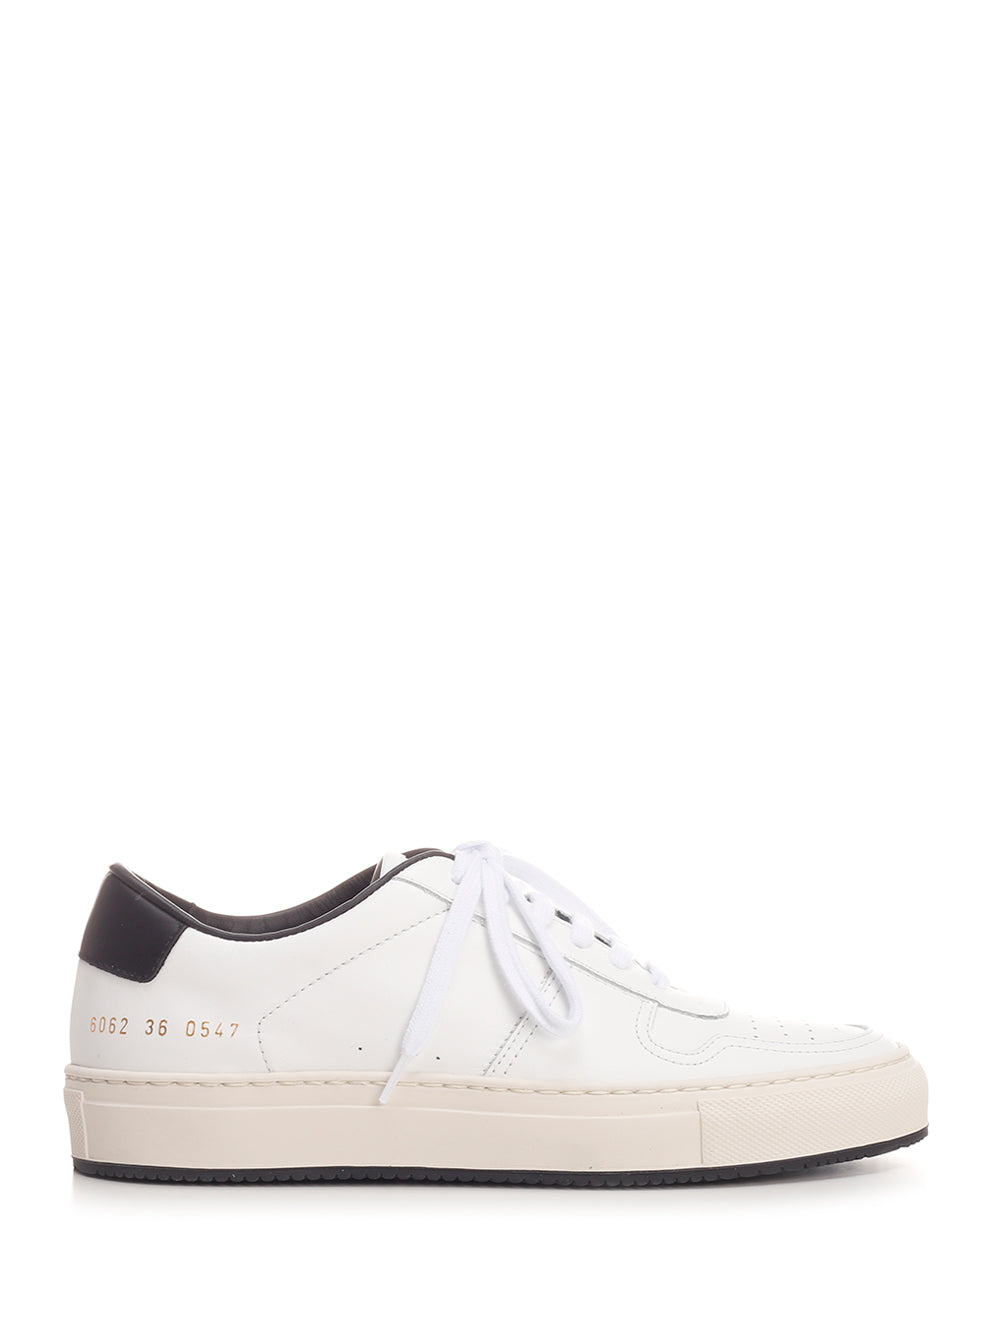 Common Projects Low tops COMMON PROJECTS BBALL 90 SNEAKERS